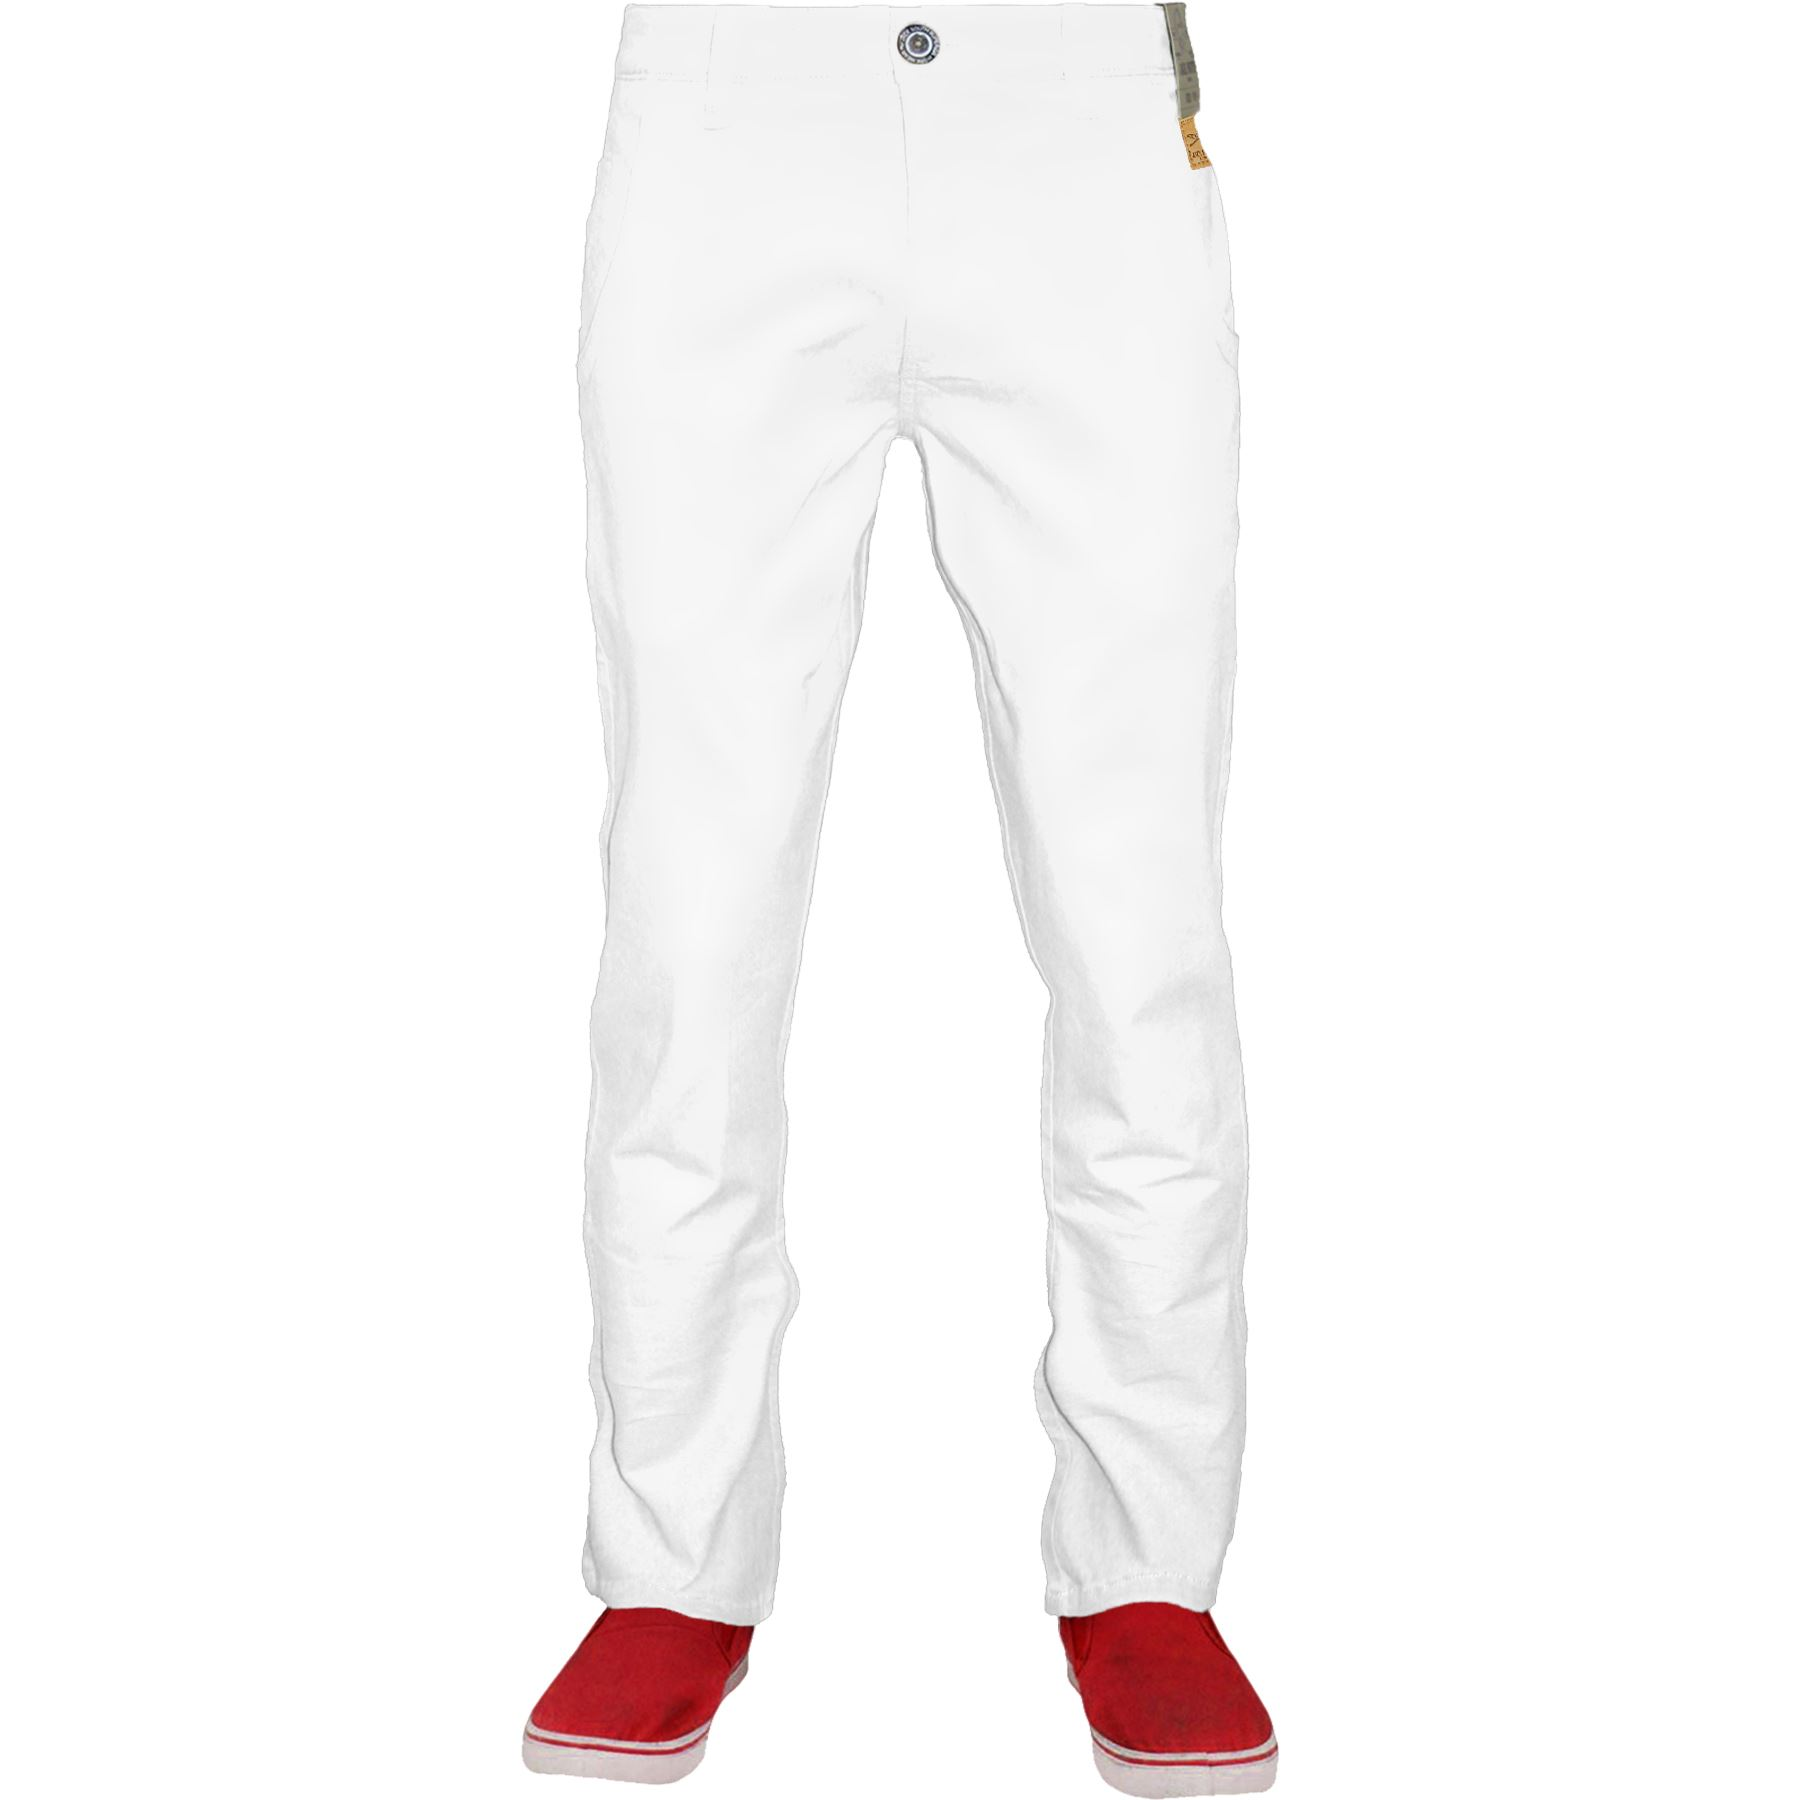 Mens-Stretch-Chino-Jacksouth-Designer-Regular-Fit-Straight-Leg-Trousers-Cotton thumbnail 29